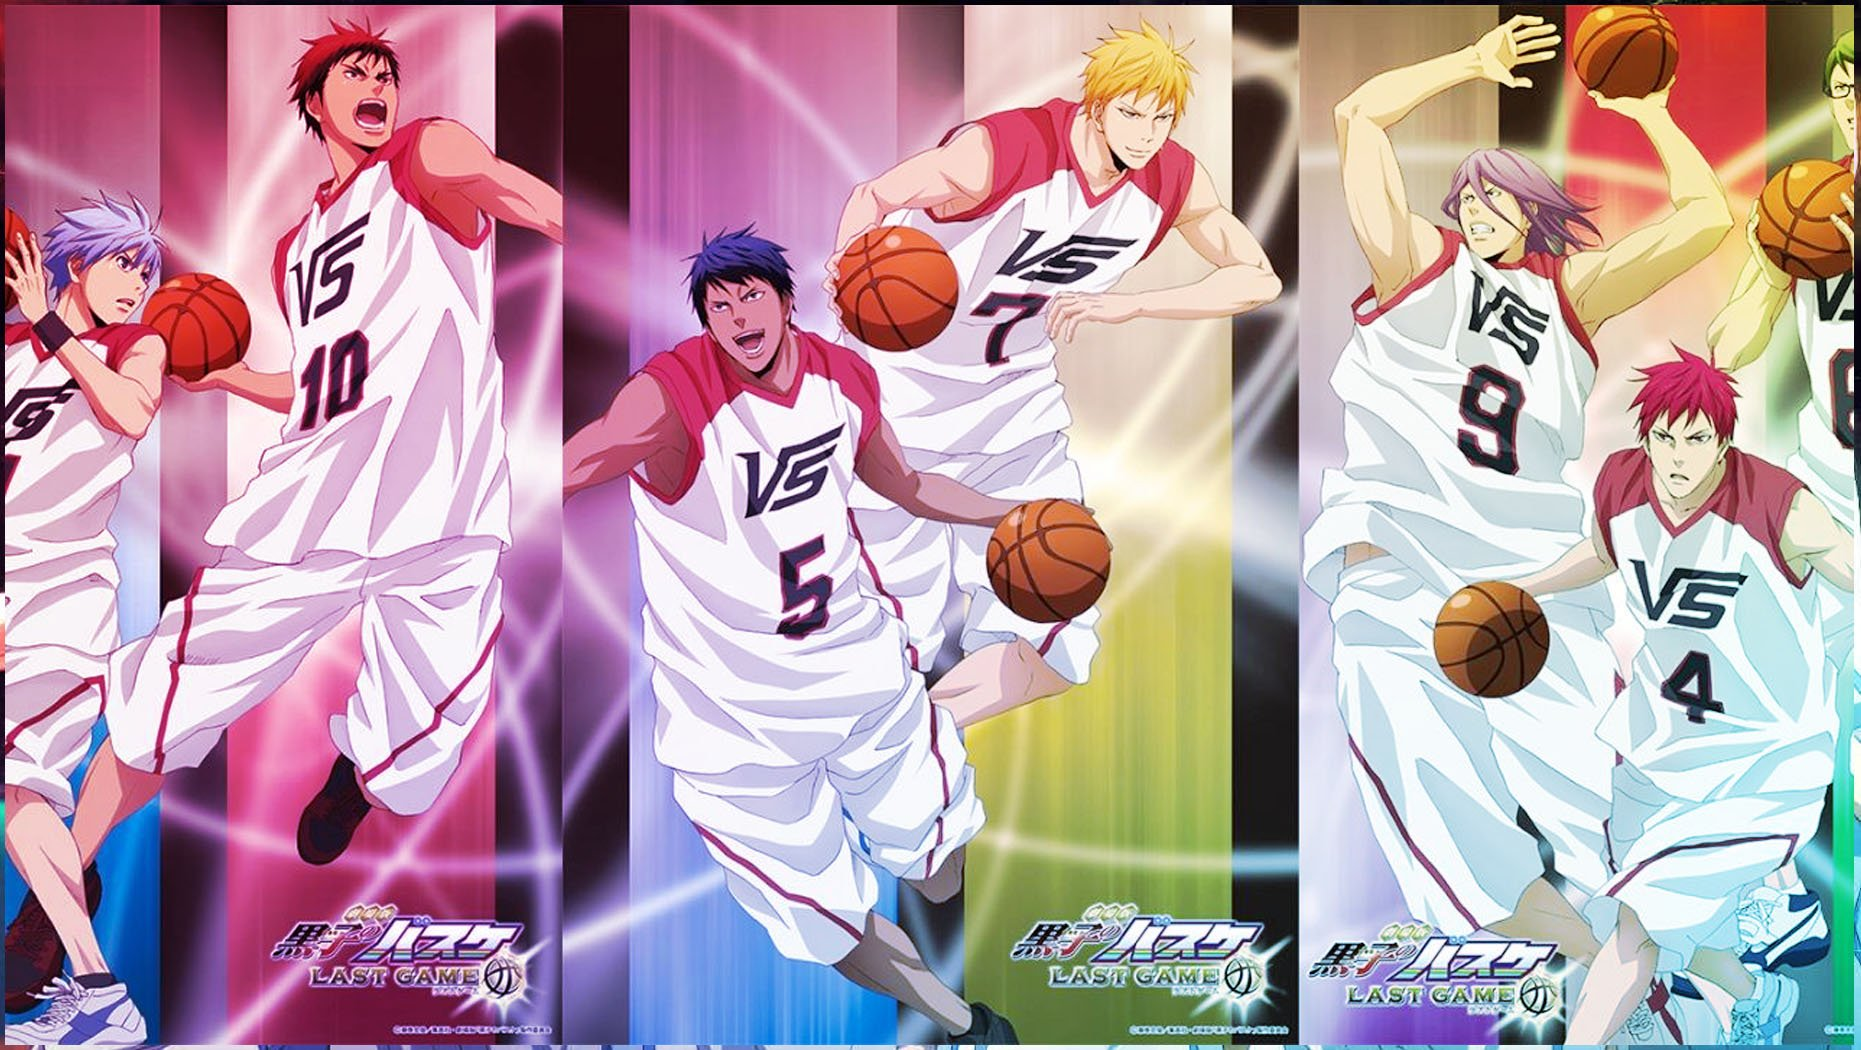 Kuroko's Basketball Season 4 Expected Release date, Voice Cast and Other  Info - Daily Research Plot